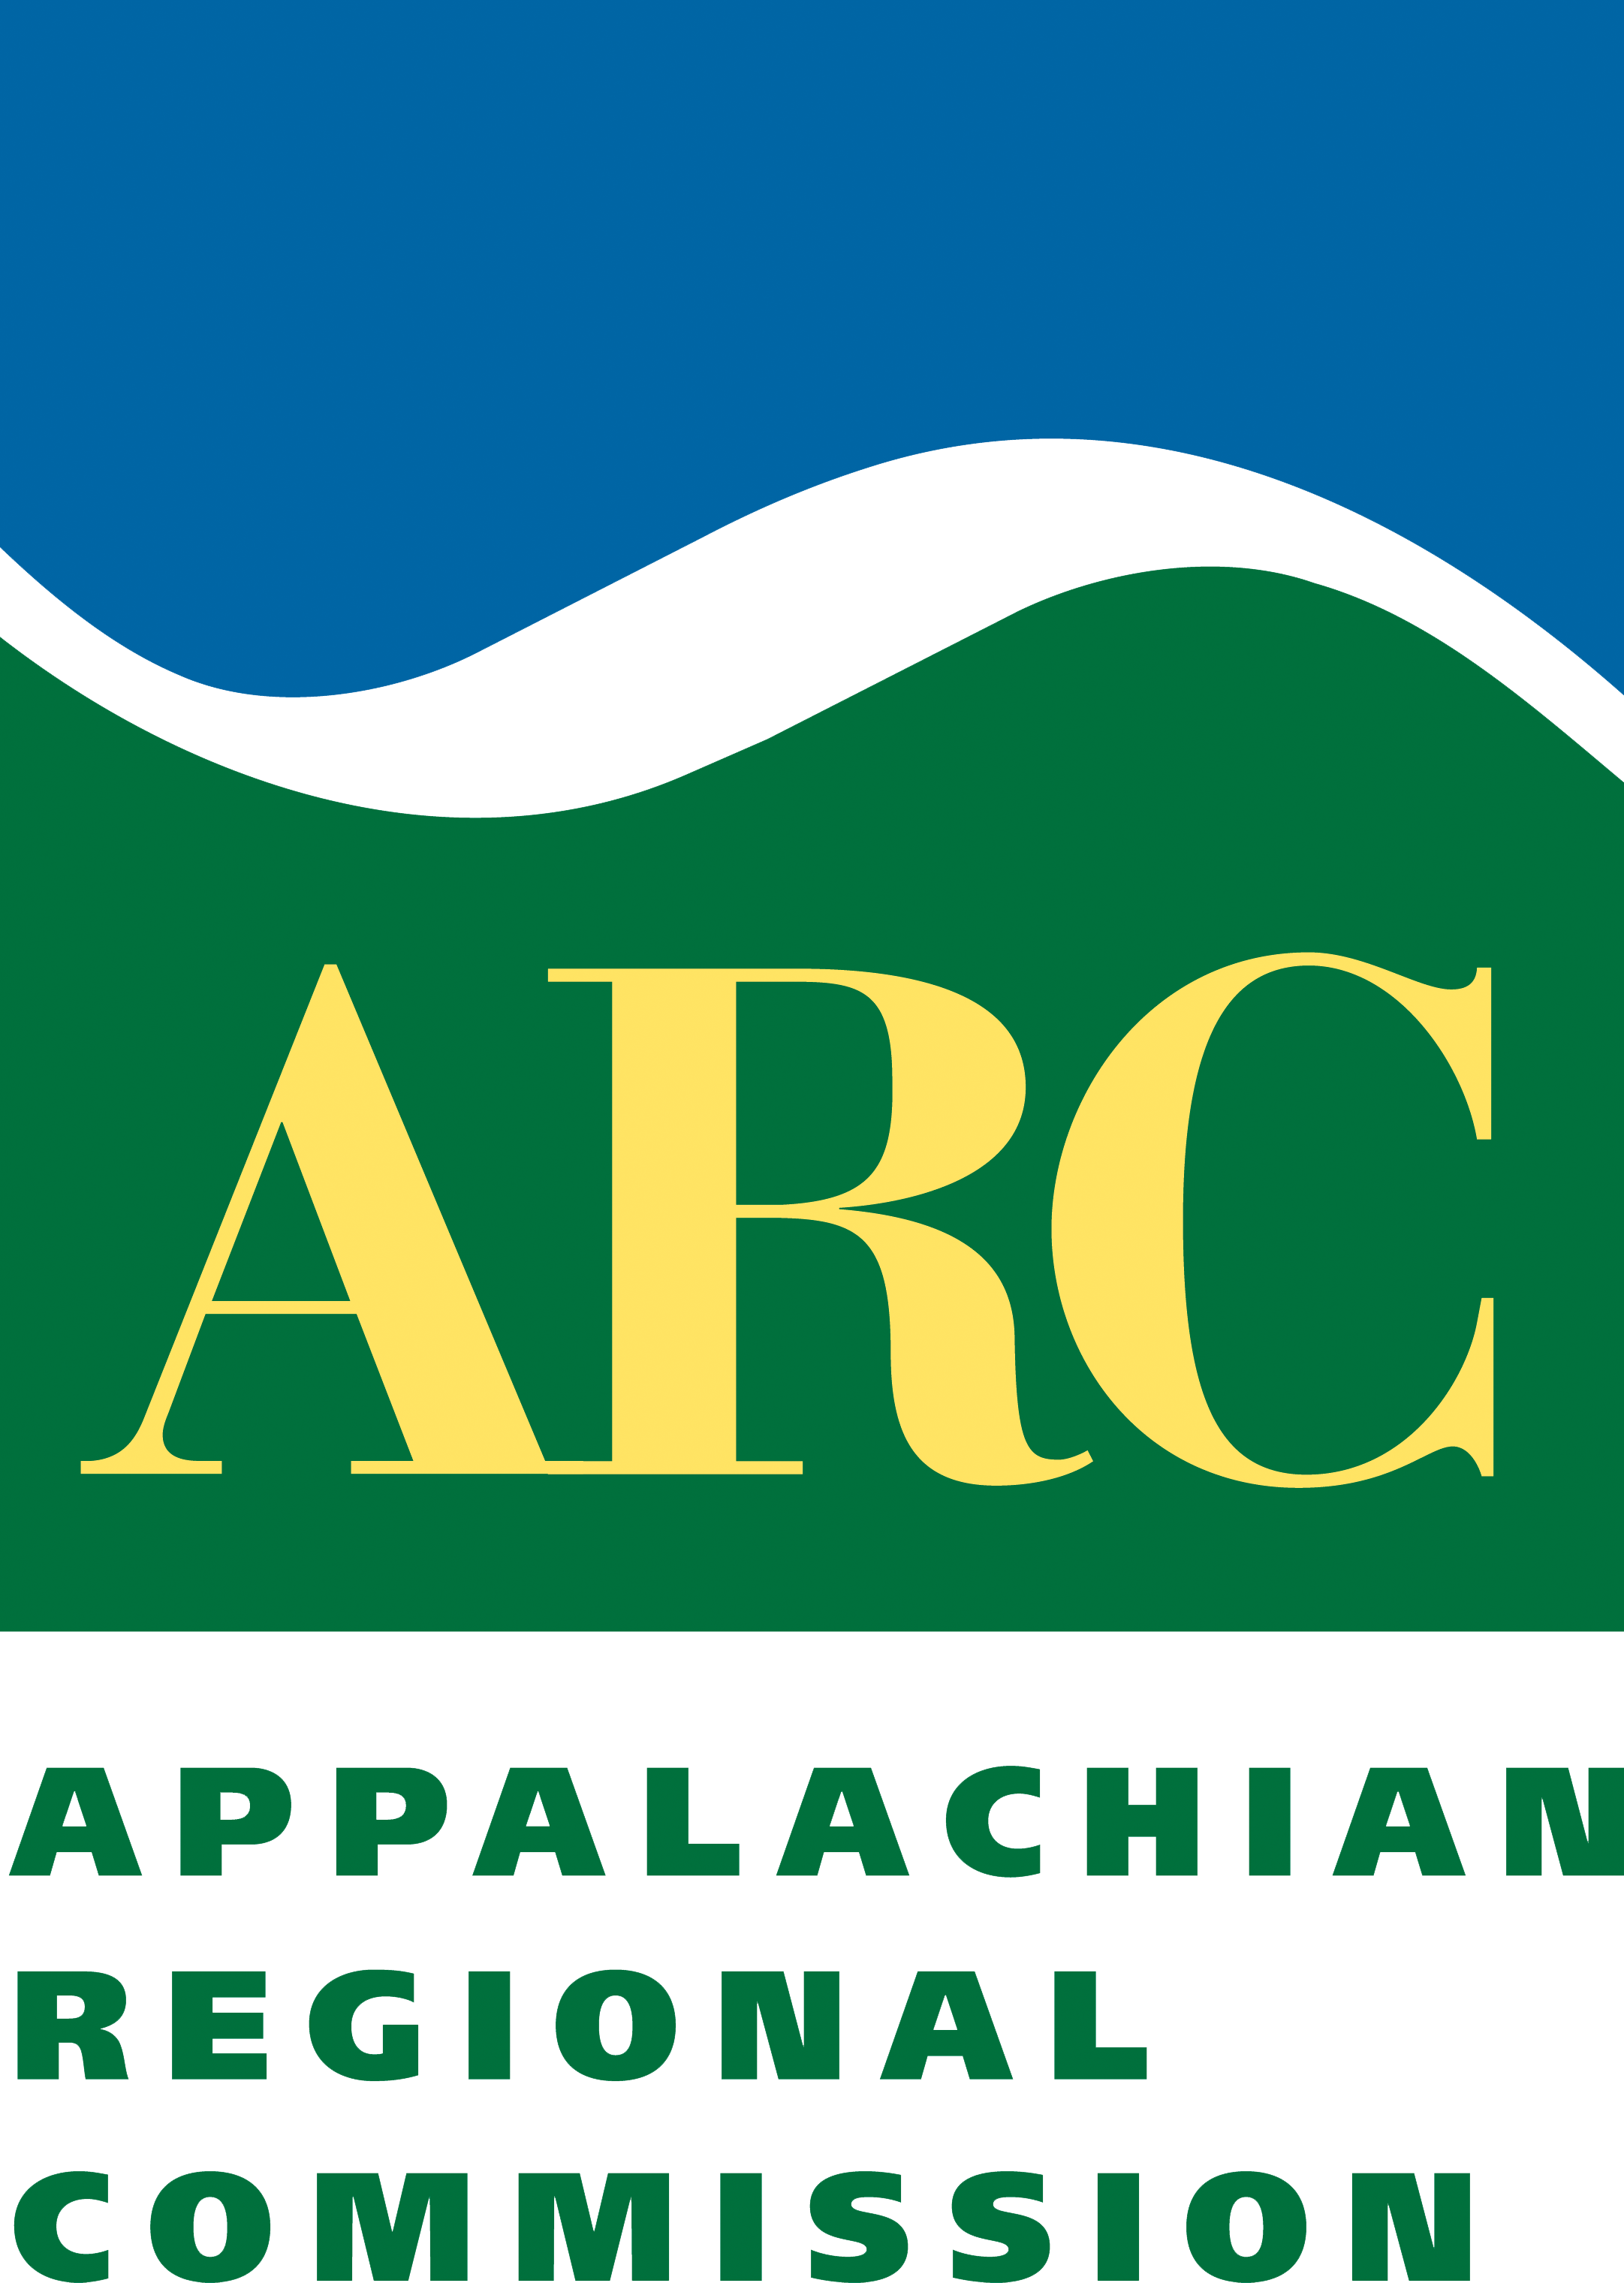 Appalachian Regional Commission | Color and Grayscale | 2018